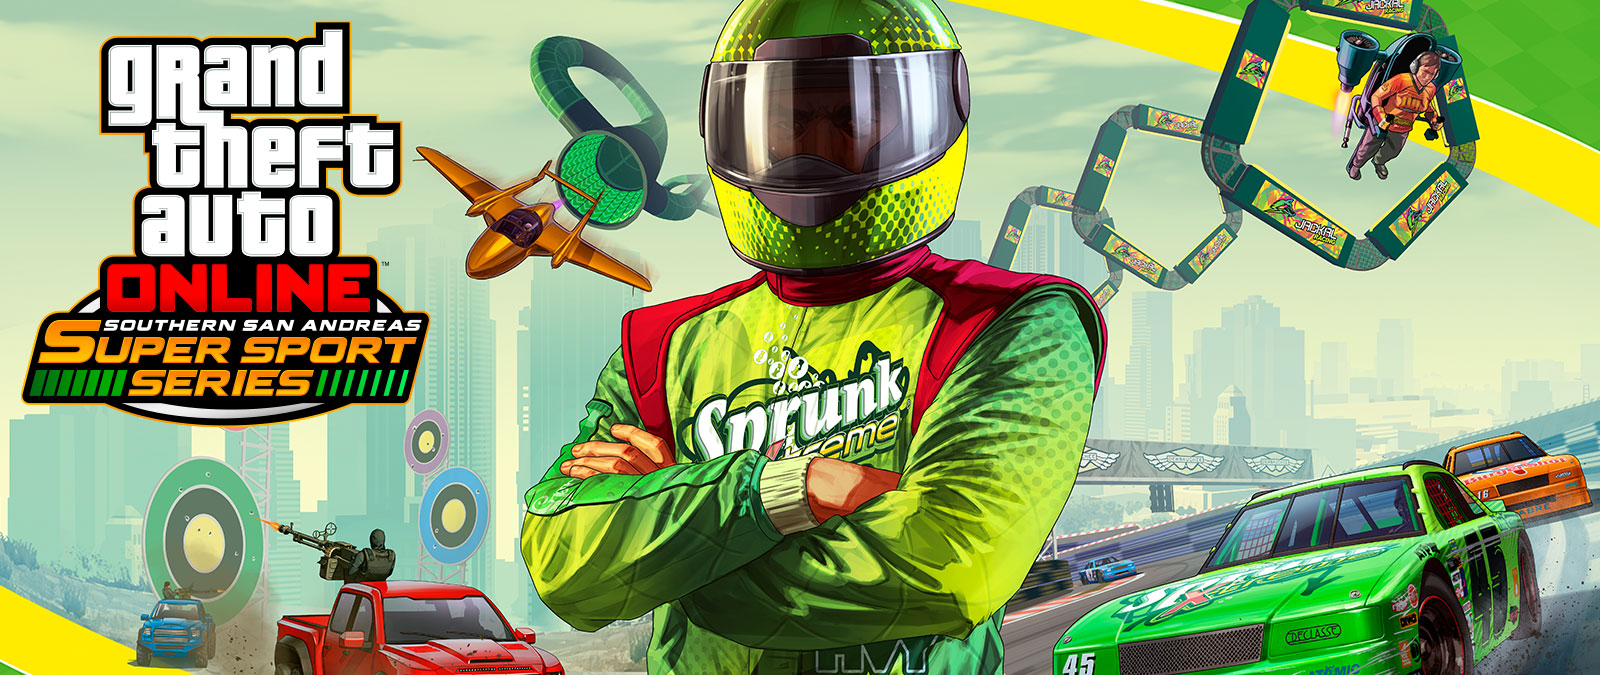 Grand Theft Auto Online Southern San Andreas Super Sports Series, Sprunk Racecar driver stands with their arms crossed in front of many different types of races.